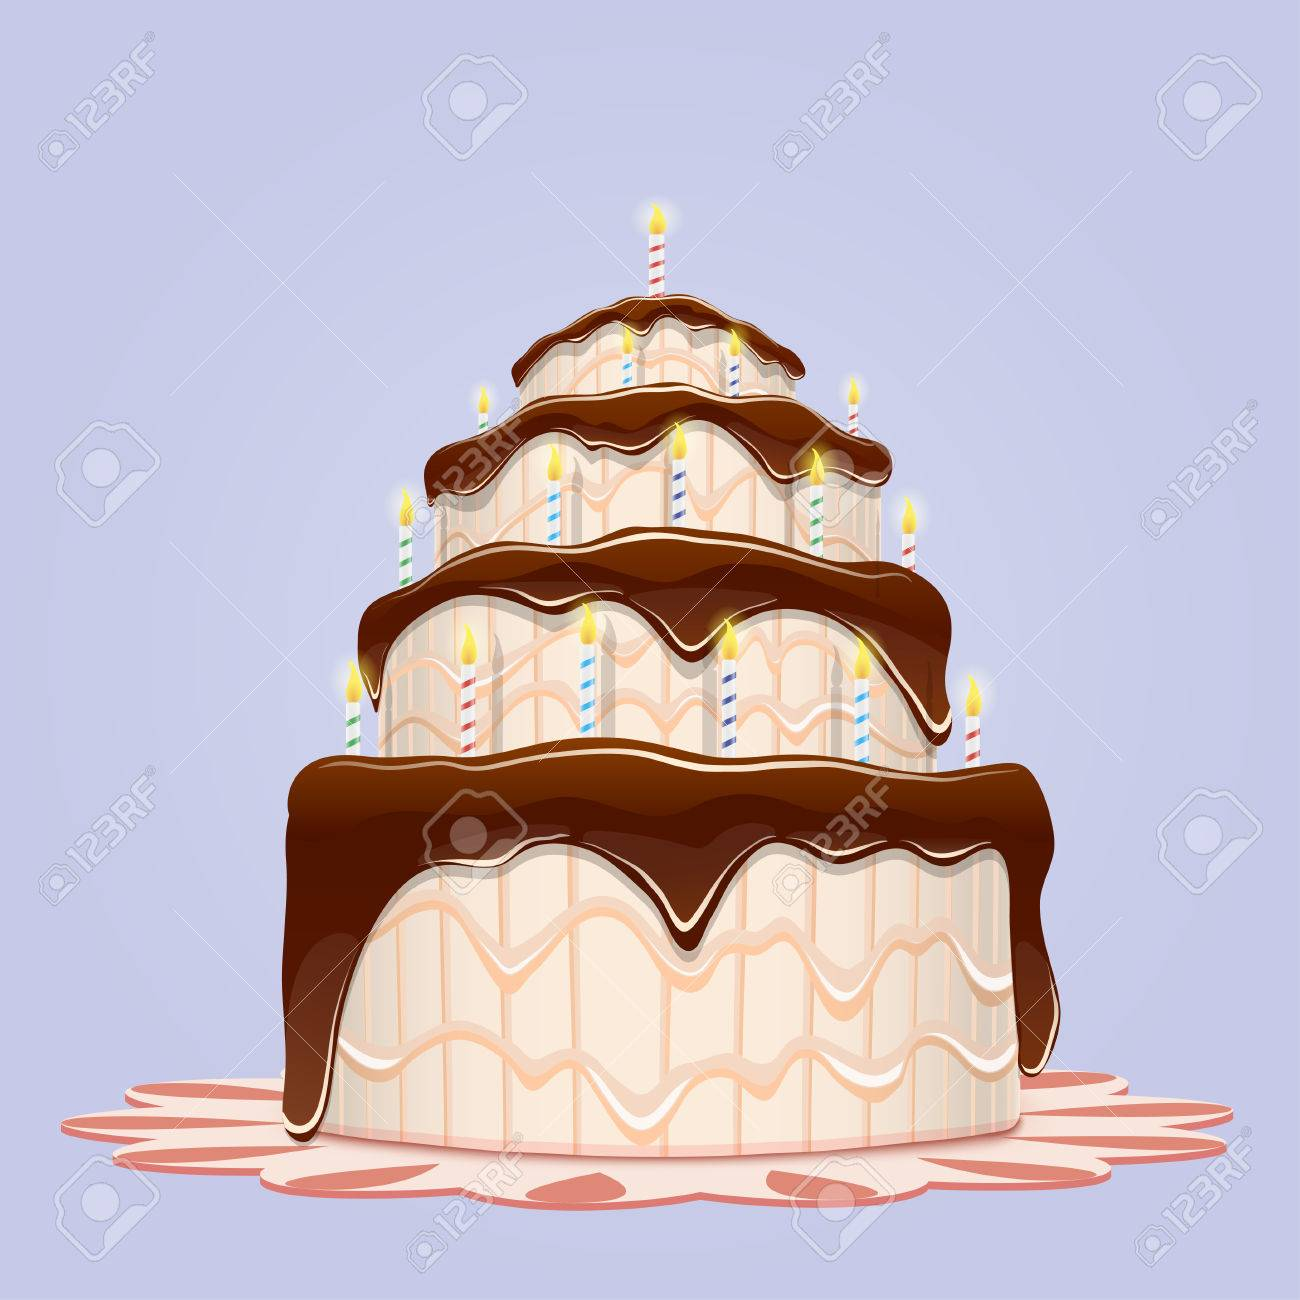 Big Birthday Cake With Candles Vector Illustration Stock